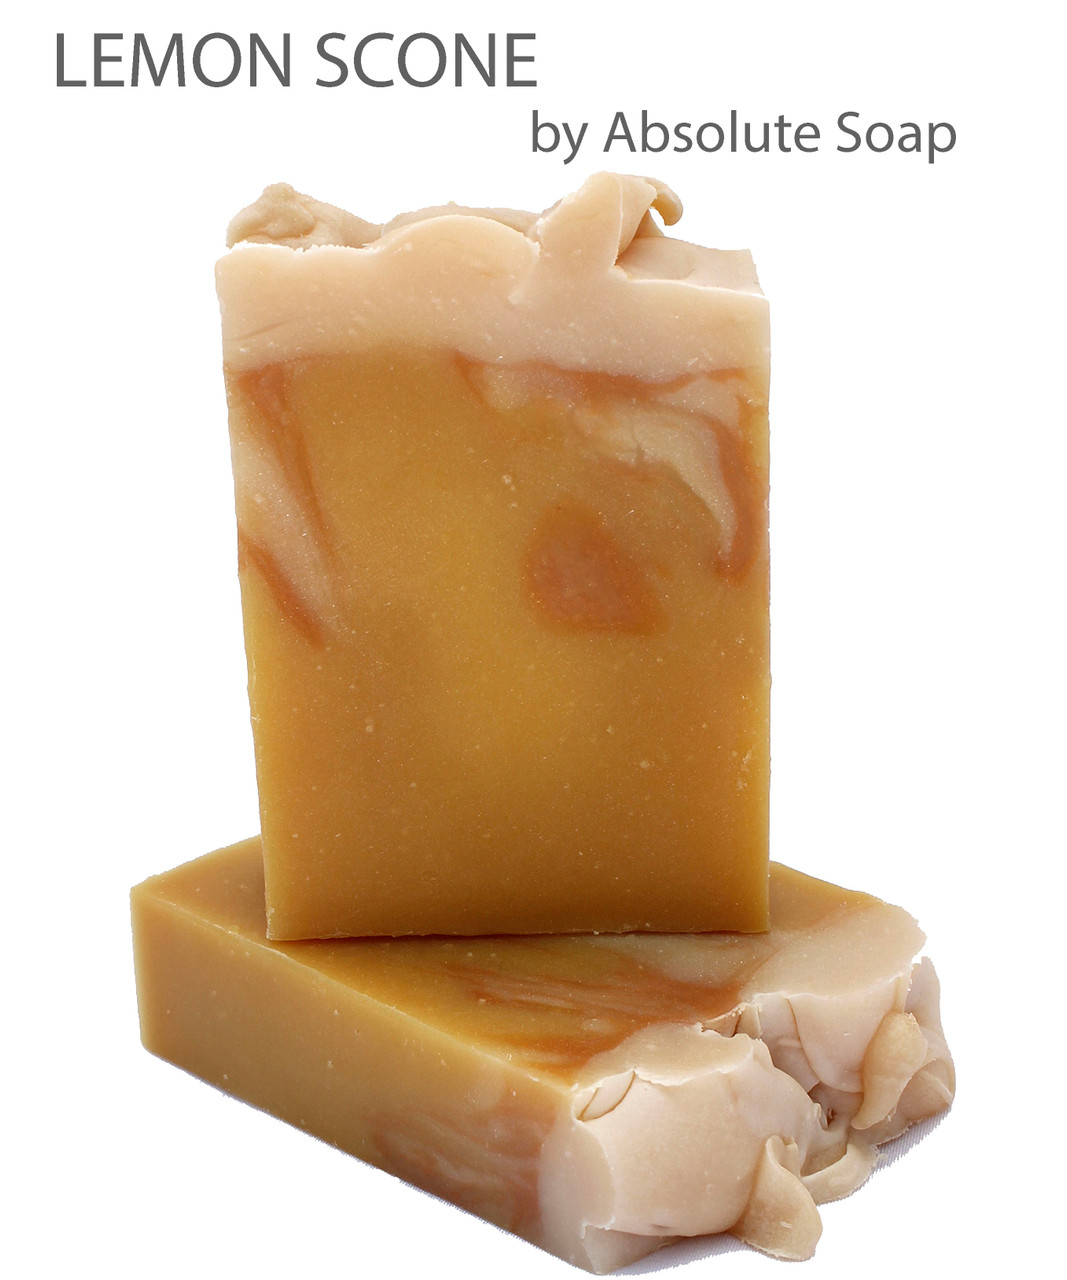 Lemon Scone Handcrafted Soap | Absolute Soap